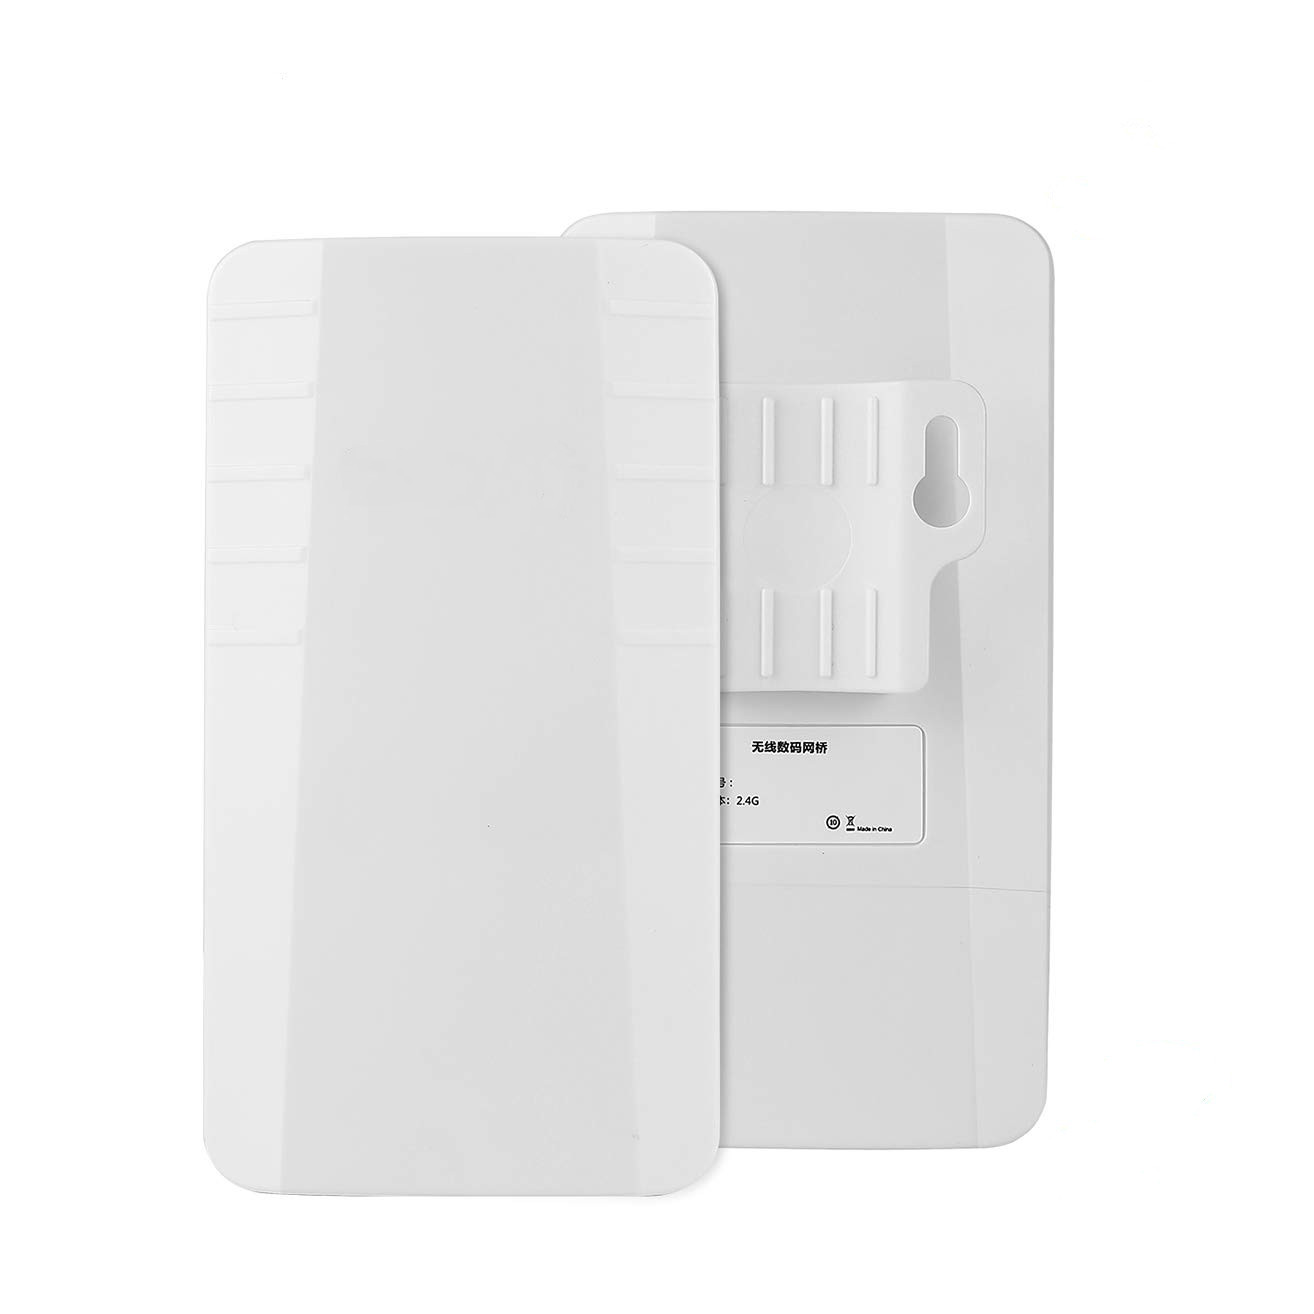 Sailsky 2.4G 300Mbps Pre-configured CPE Kit Indoor Outdoor point to point 1-3KM wireless bridge AP